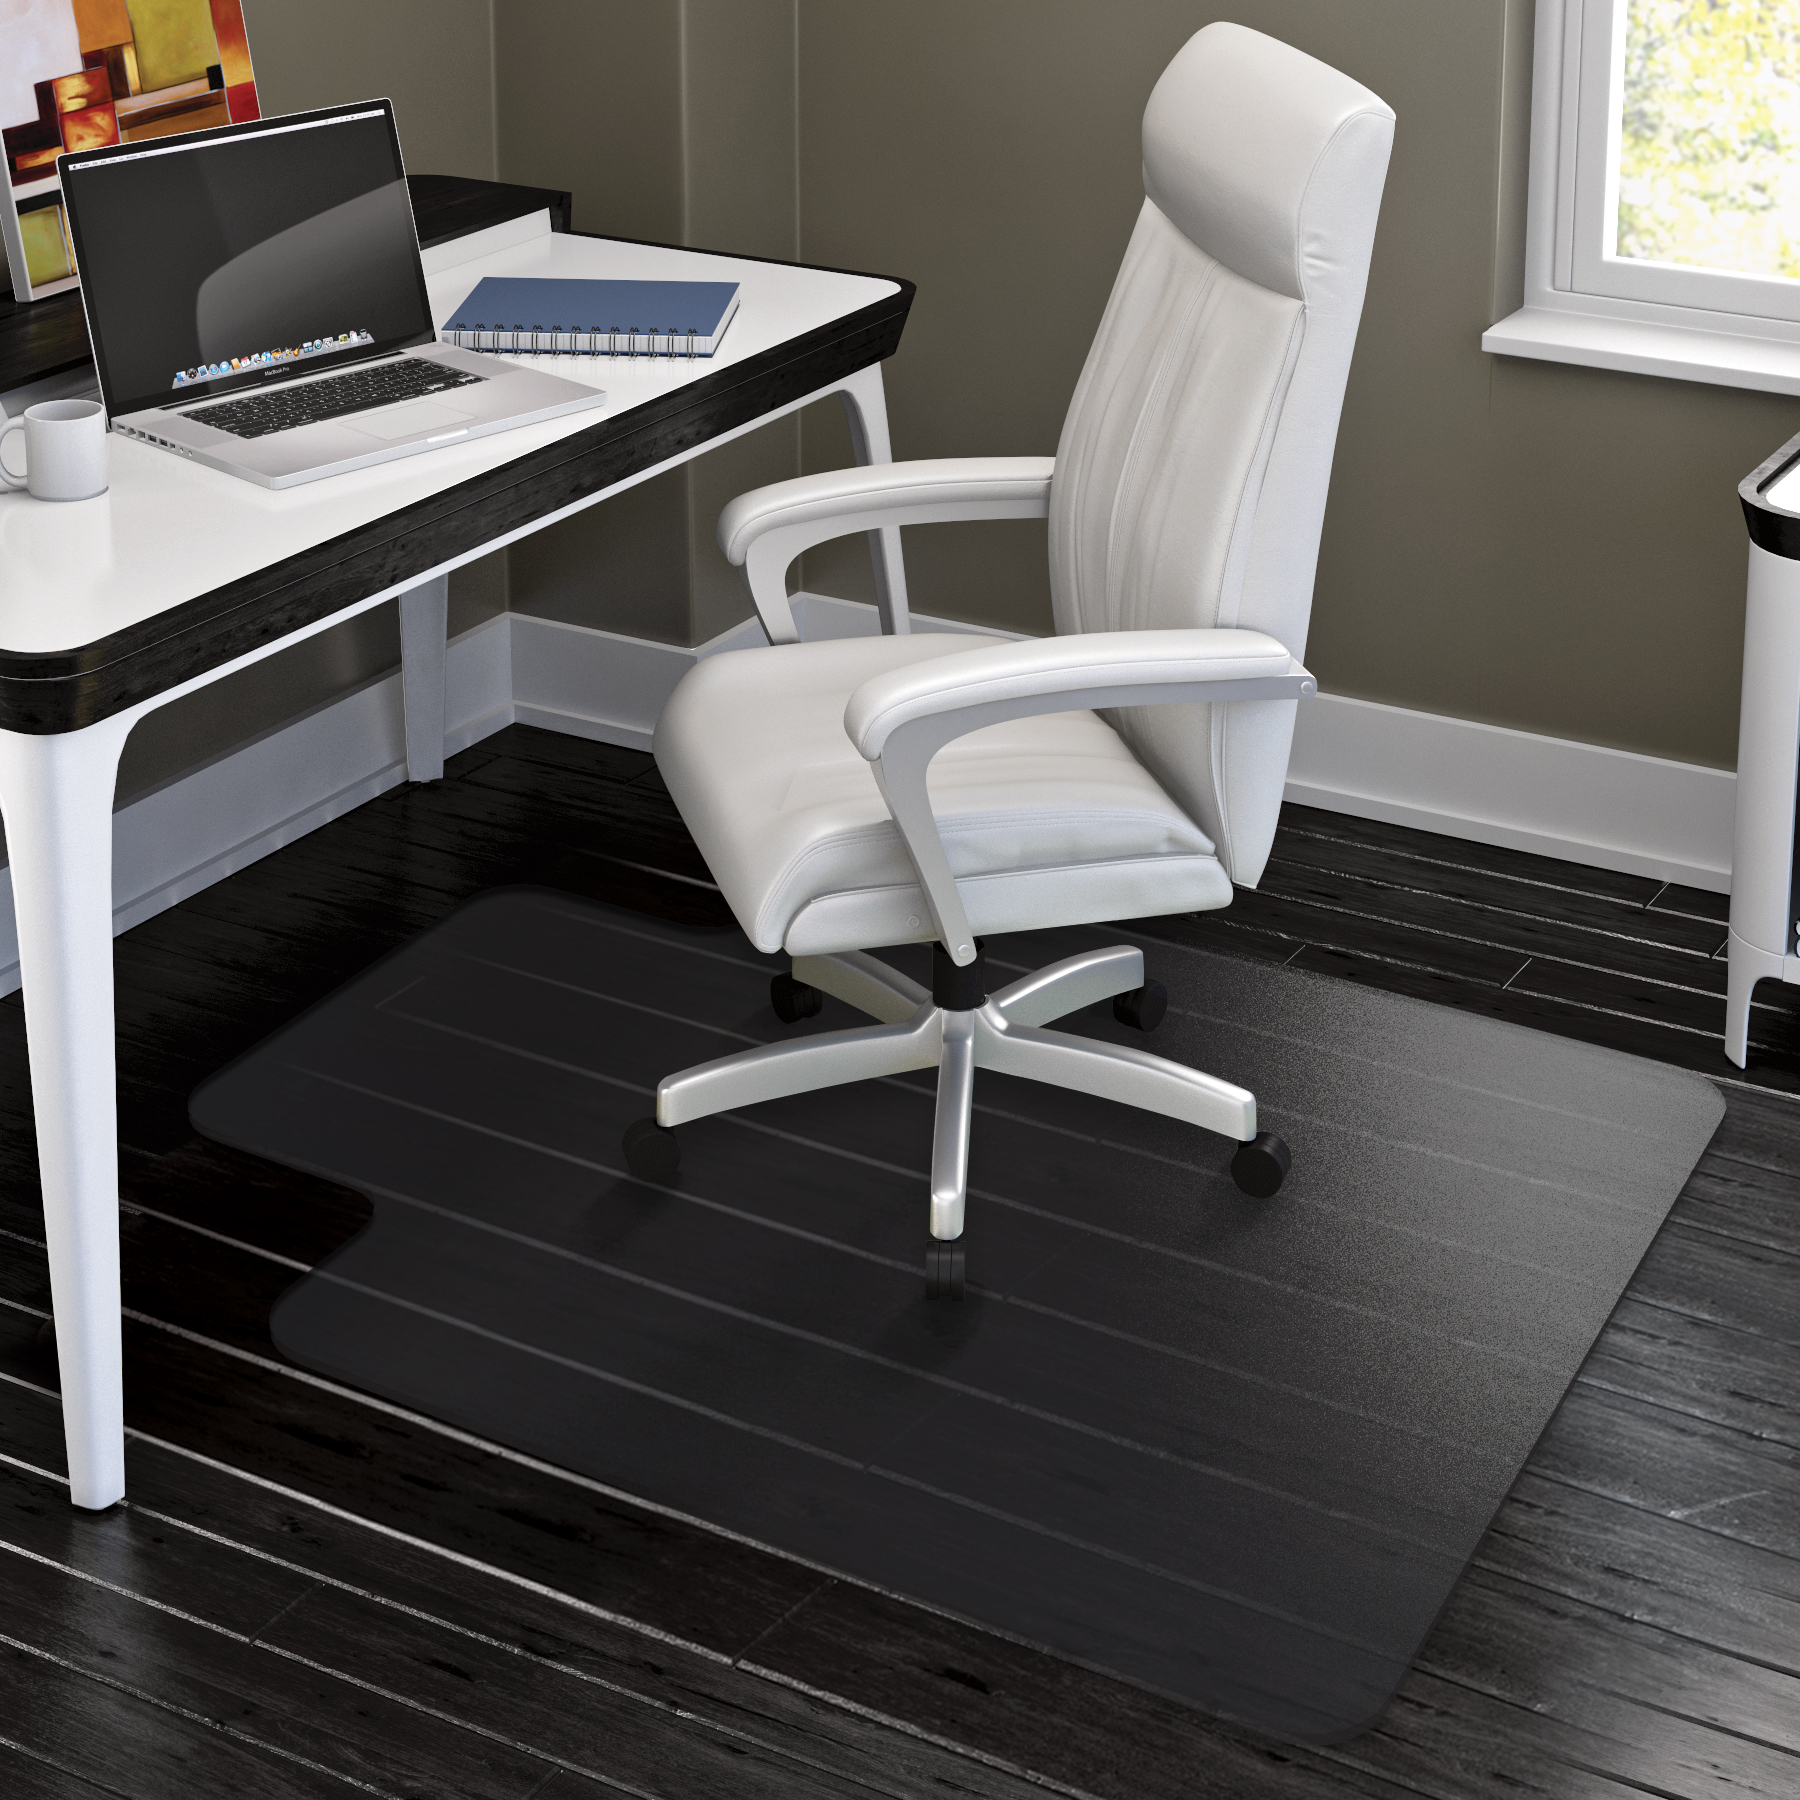 chair shabby floor cover office mats in carpet chic gallery for flooring desk